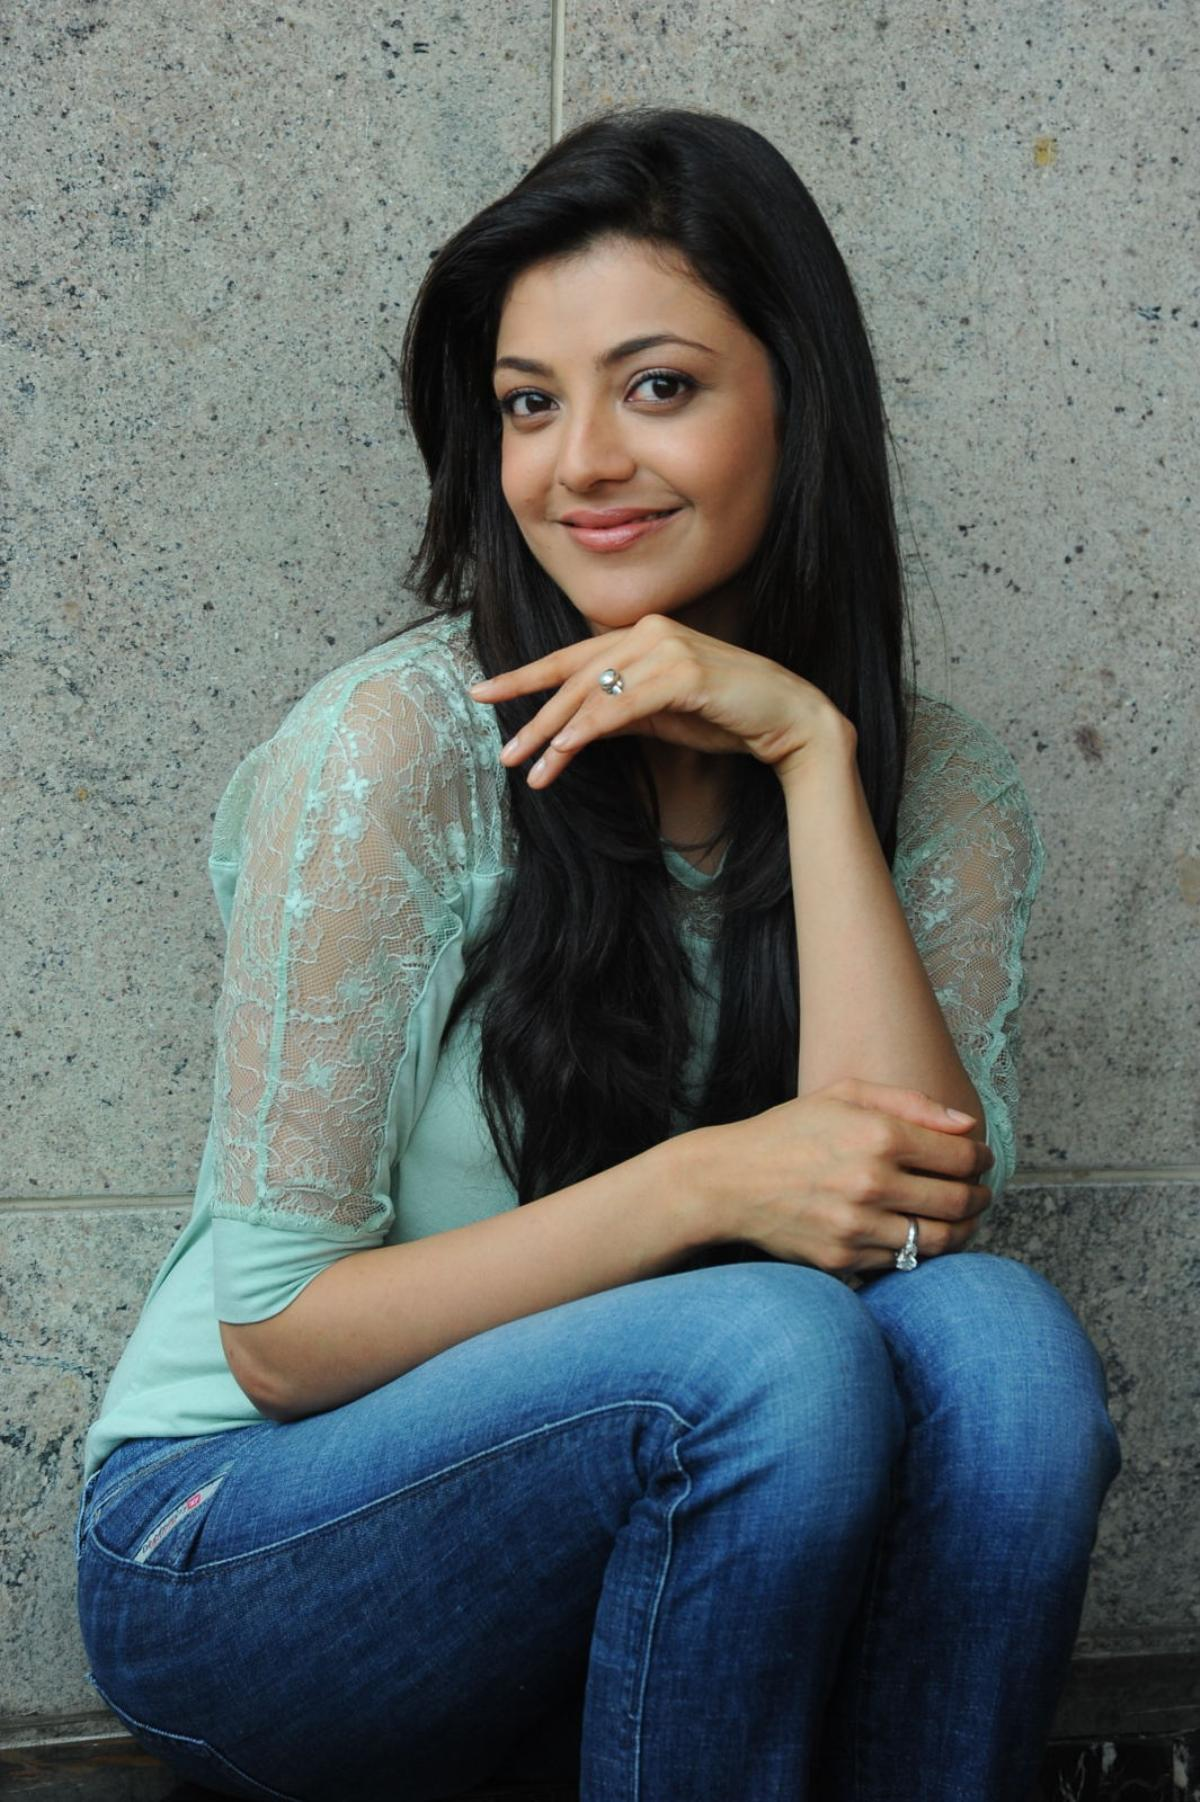 Kajal Aggarwal HD Wallpapers [13-24] • PoPoPics.com